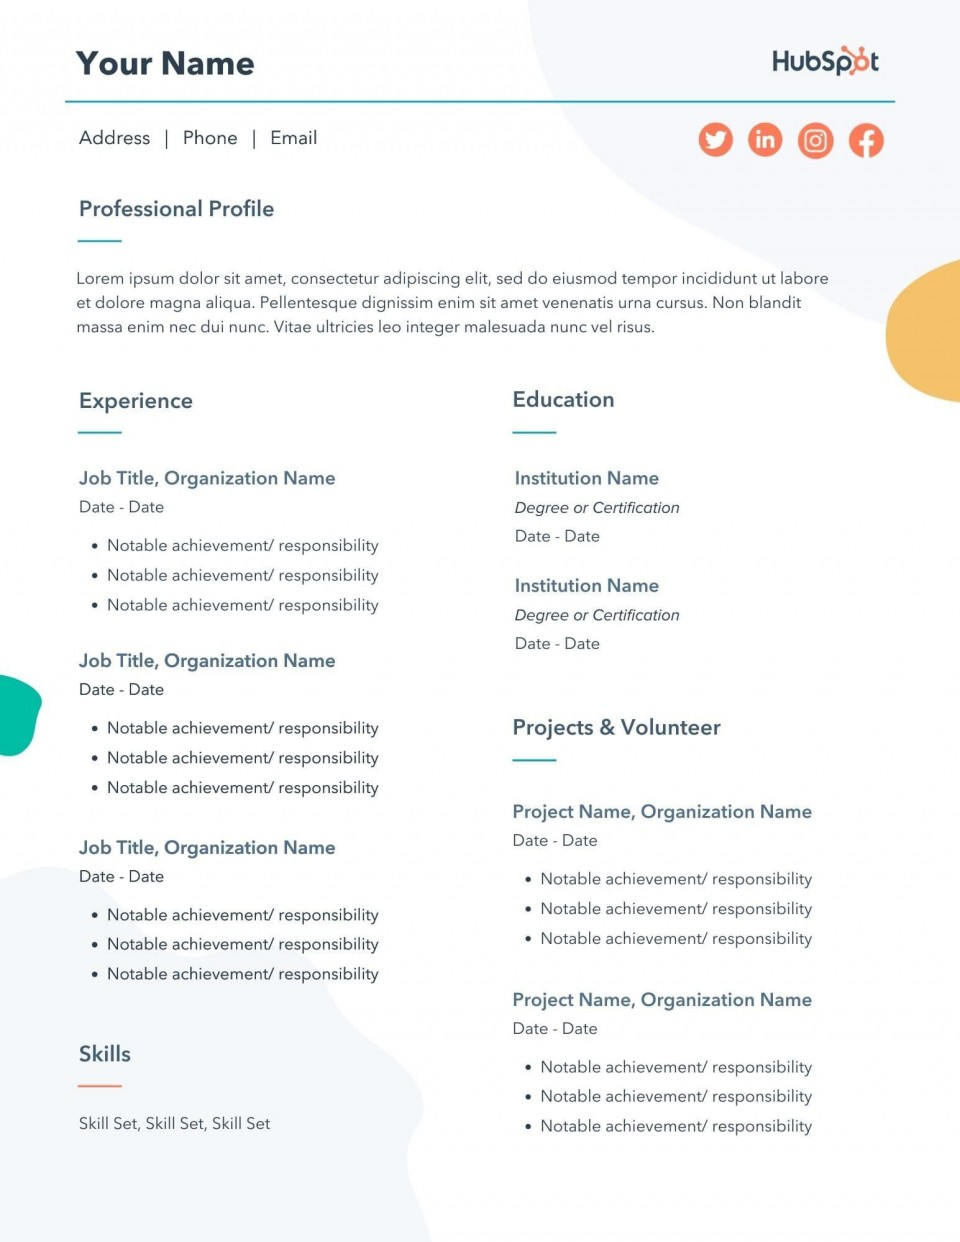 009 Impressive Make A Resume Template In Word Image  How To Create 2010 2013960